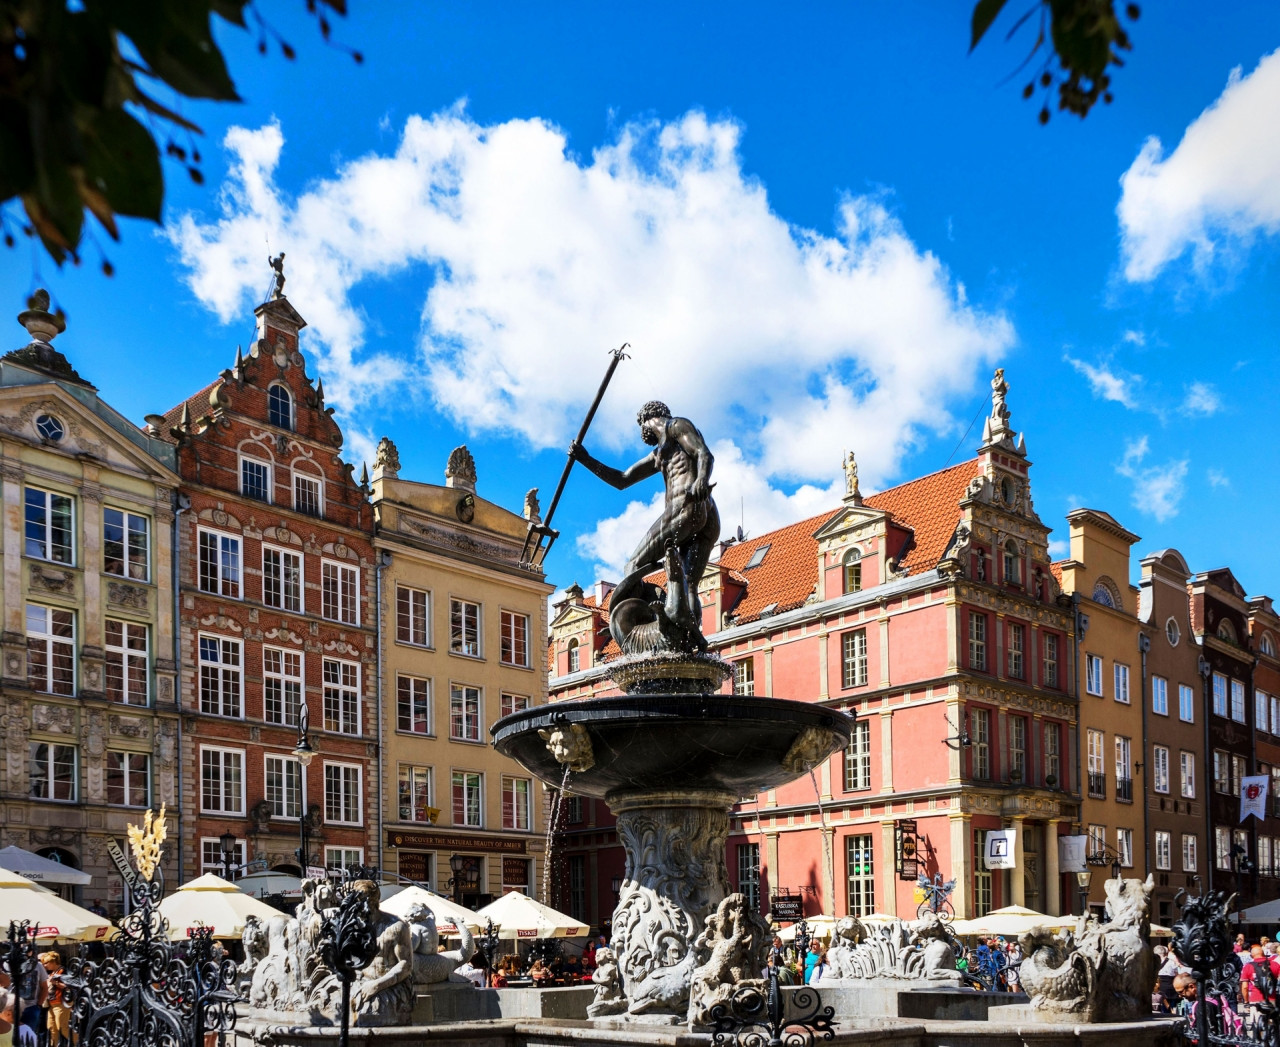 The Neptune's Fountain in Gdańsk